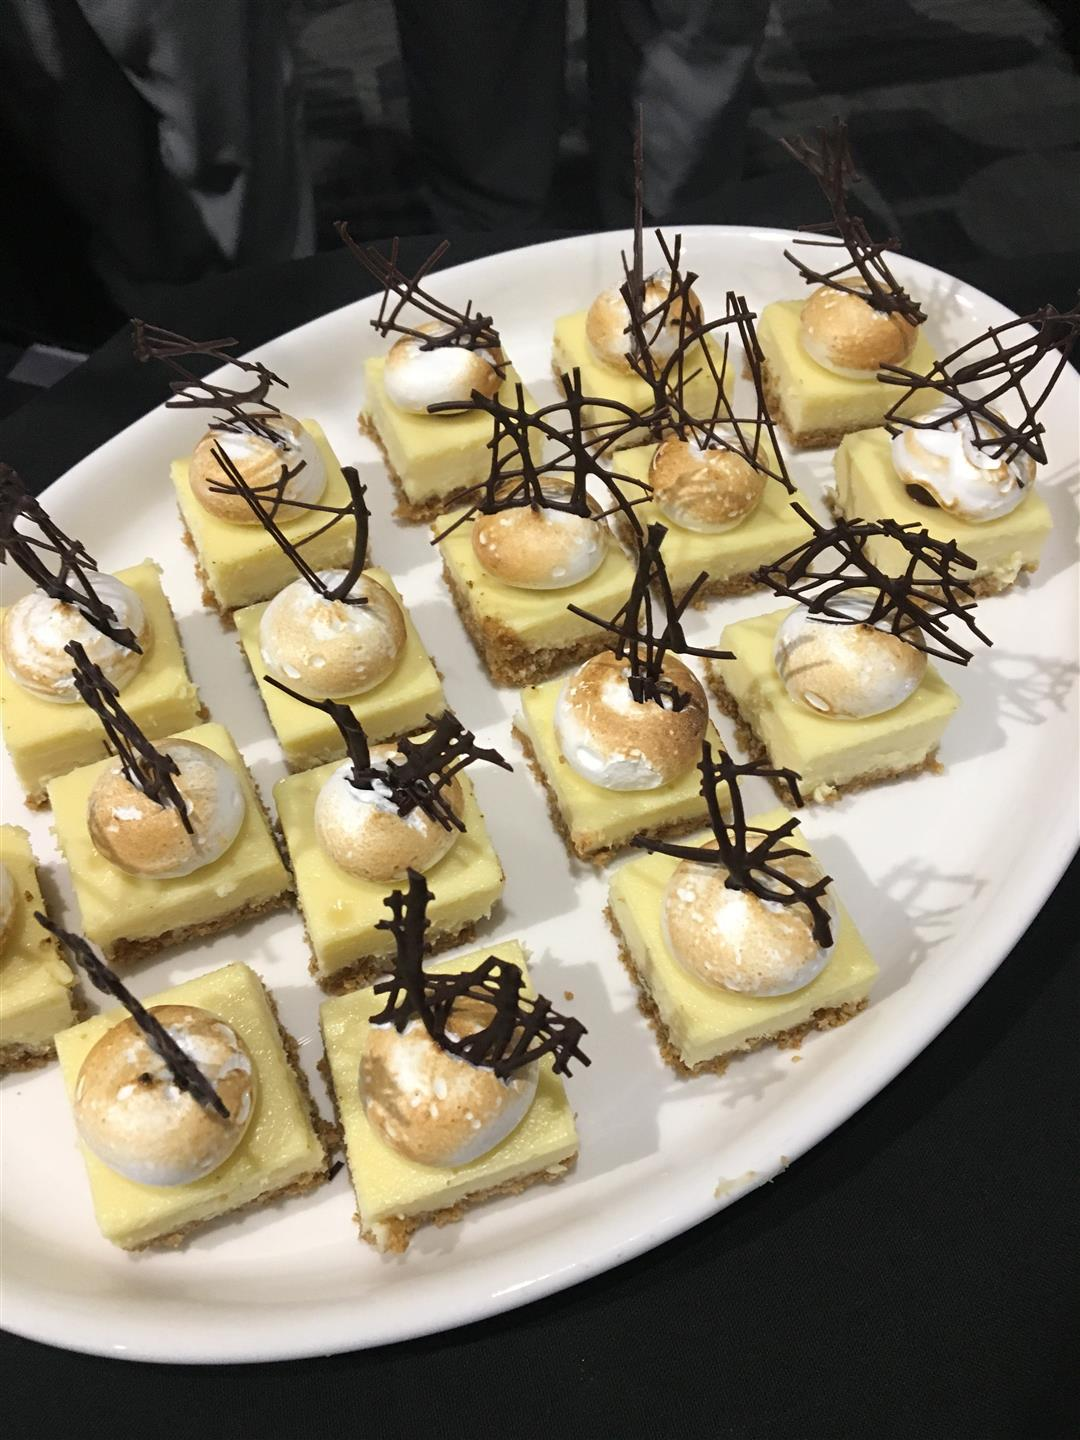 Cheesecake bites on a platter